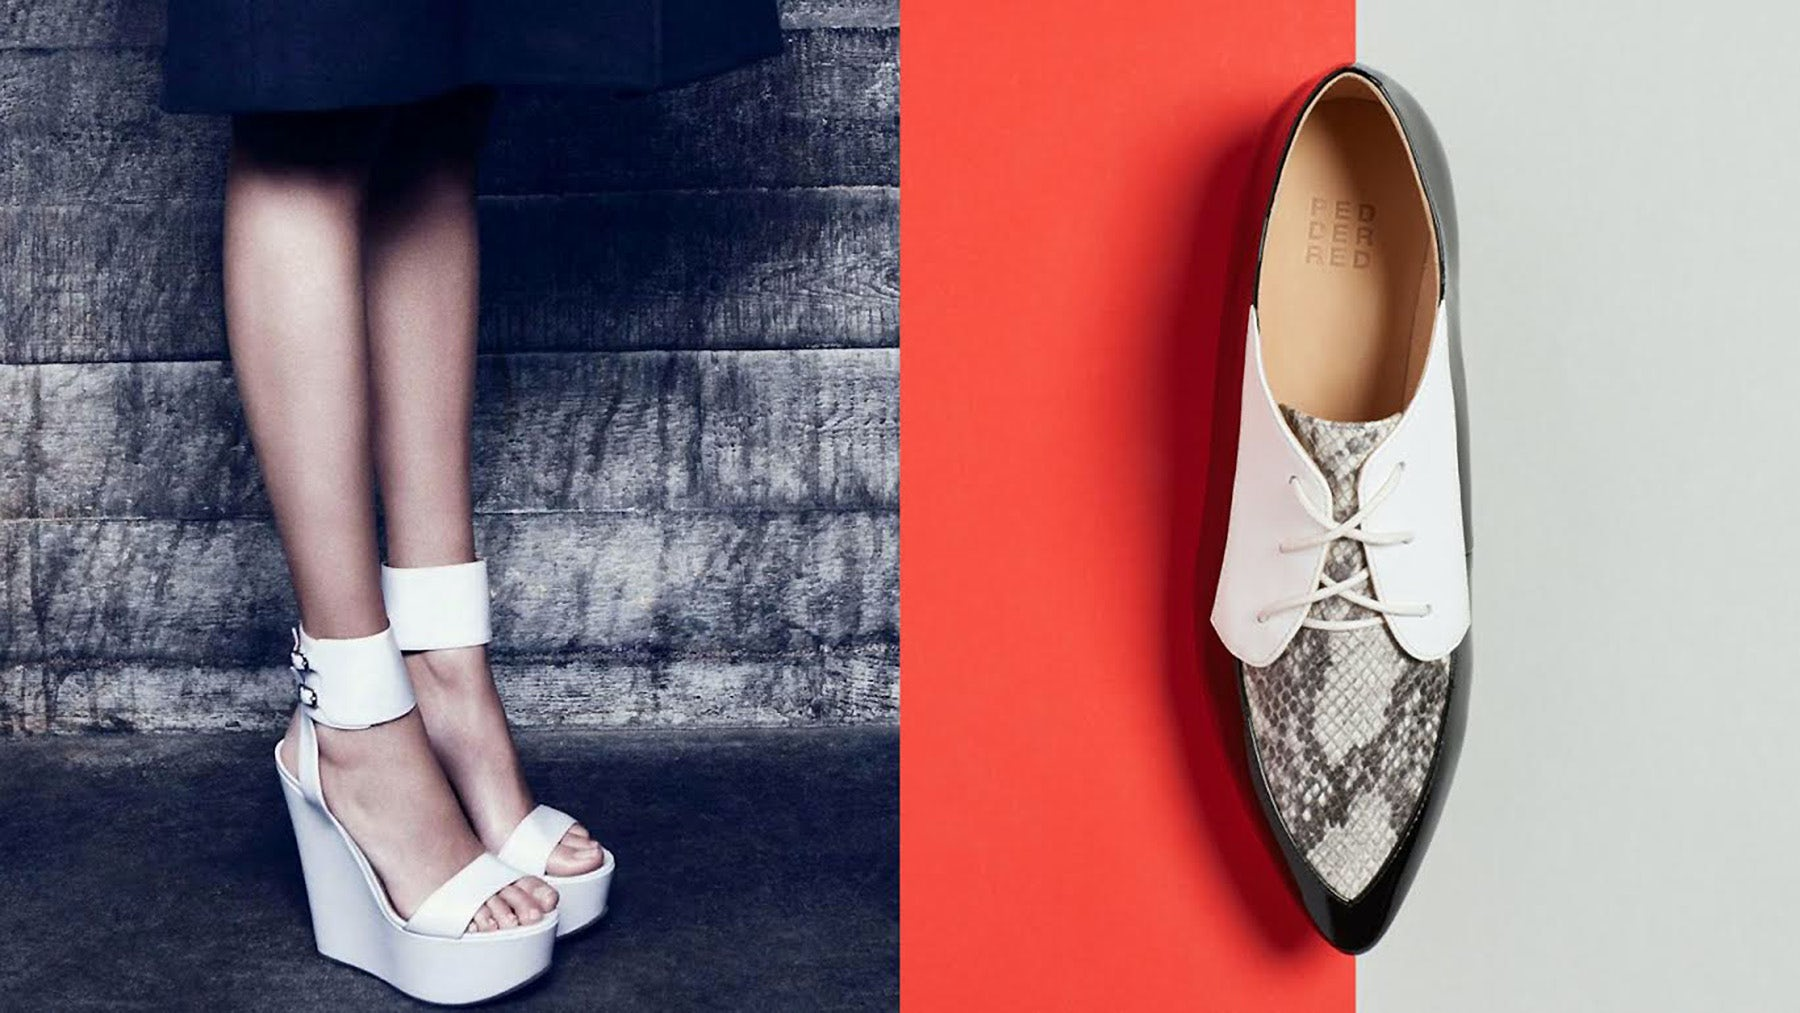 L-R: Kurt Geiger, Pedder Red | Source: Kurt Geiger, Pedder Red